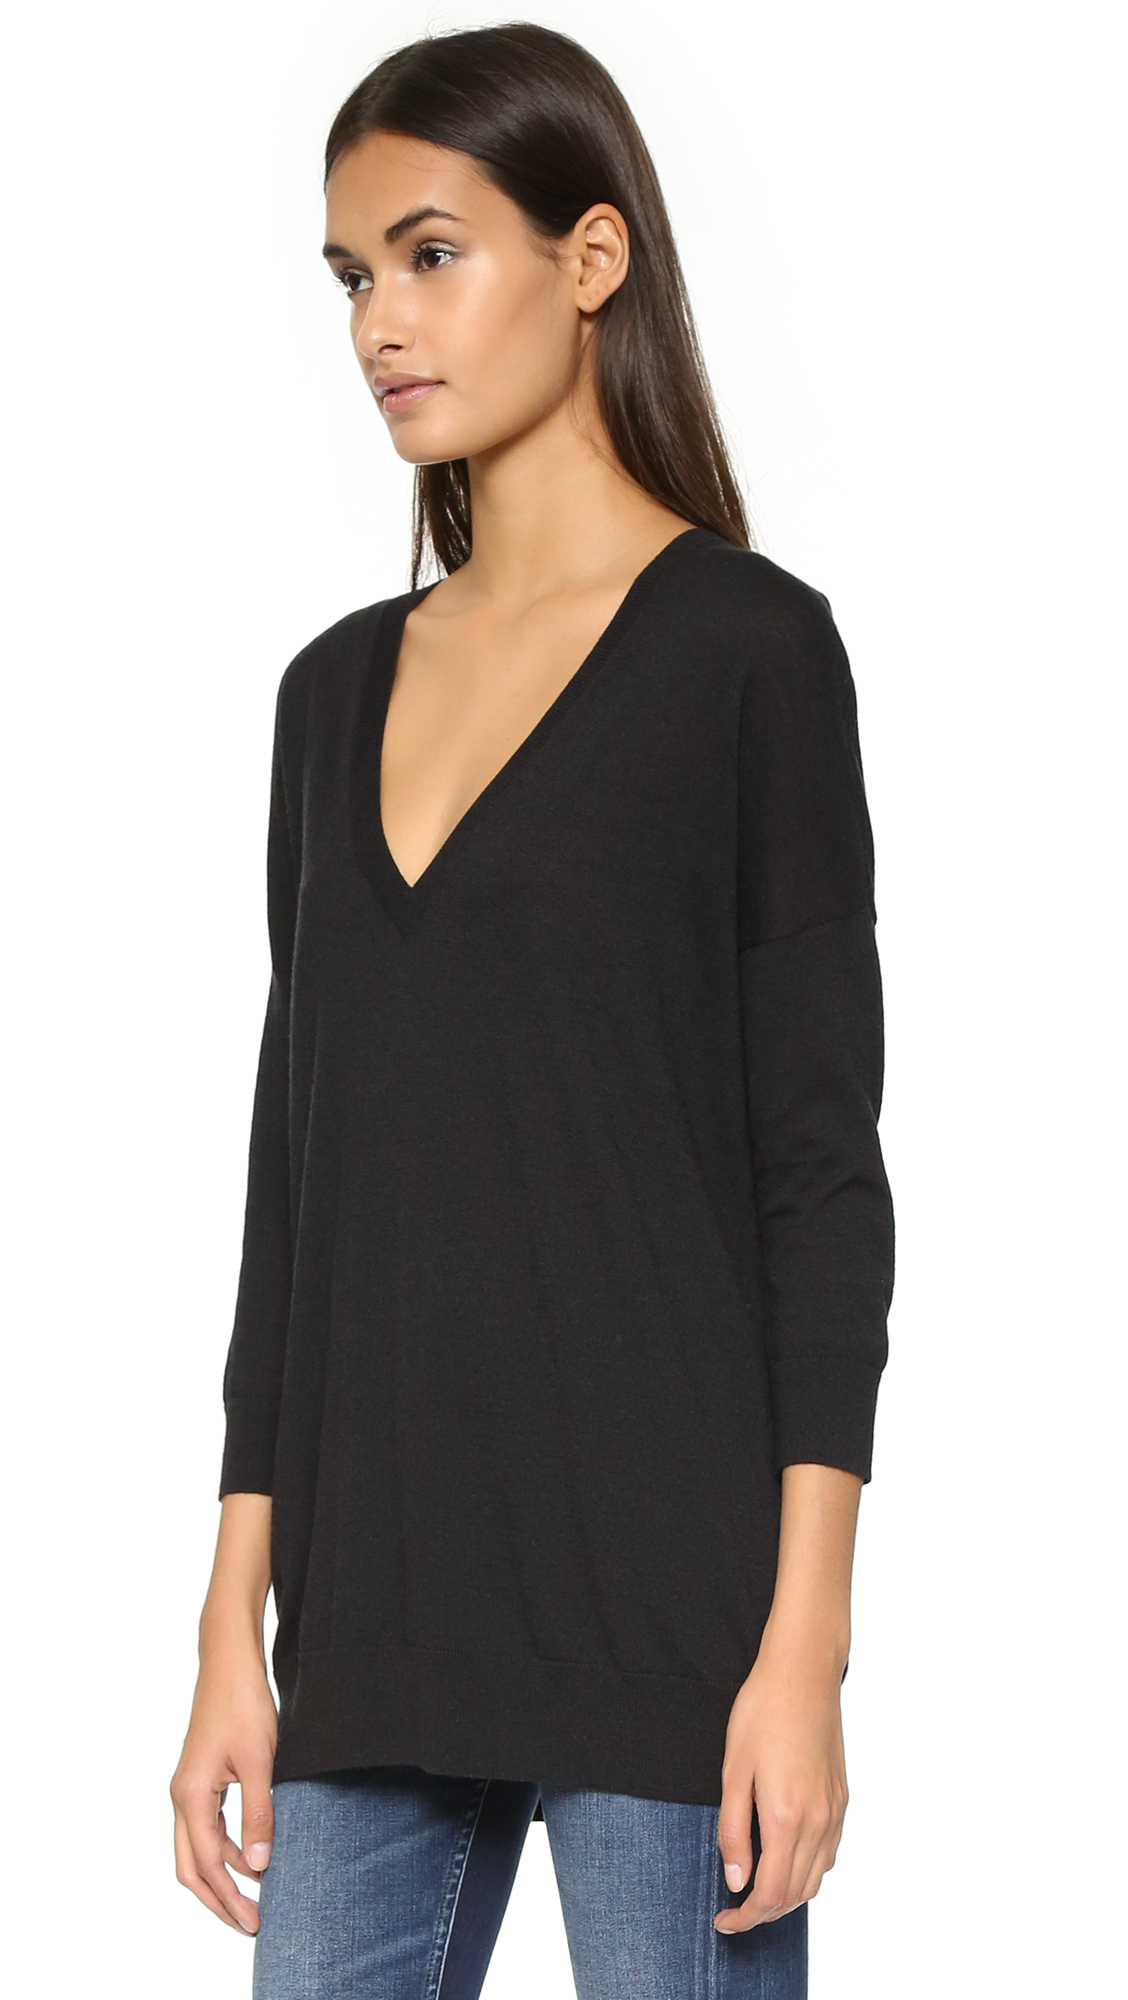 Autumn cashmere Cashmere Slouchy V Neck Sweater - Black in Black ...